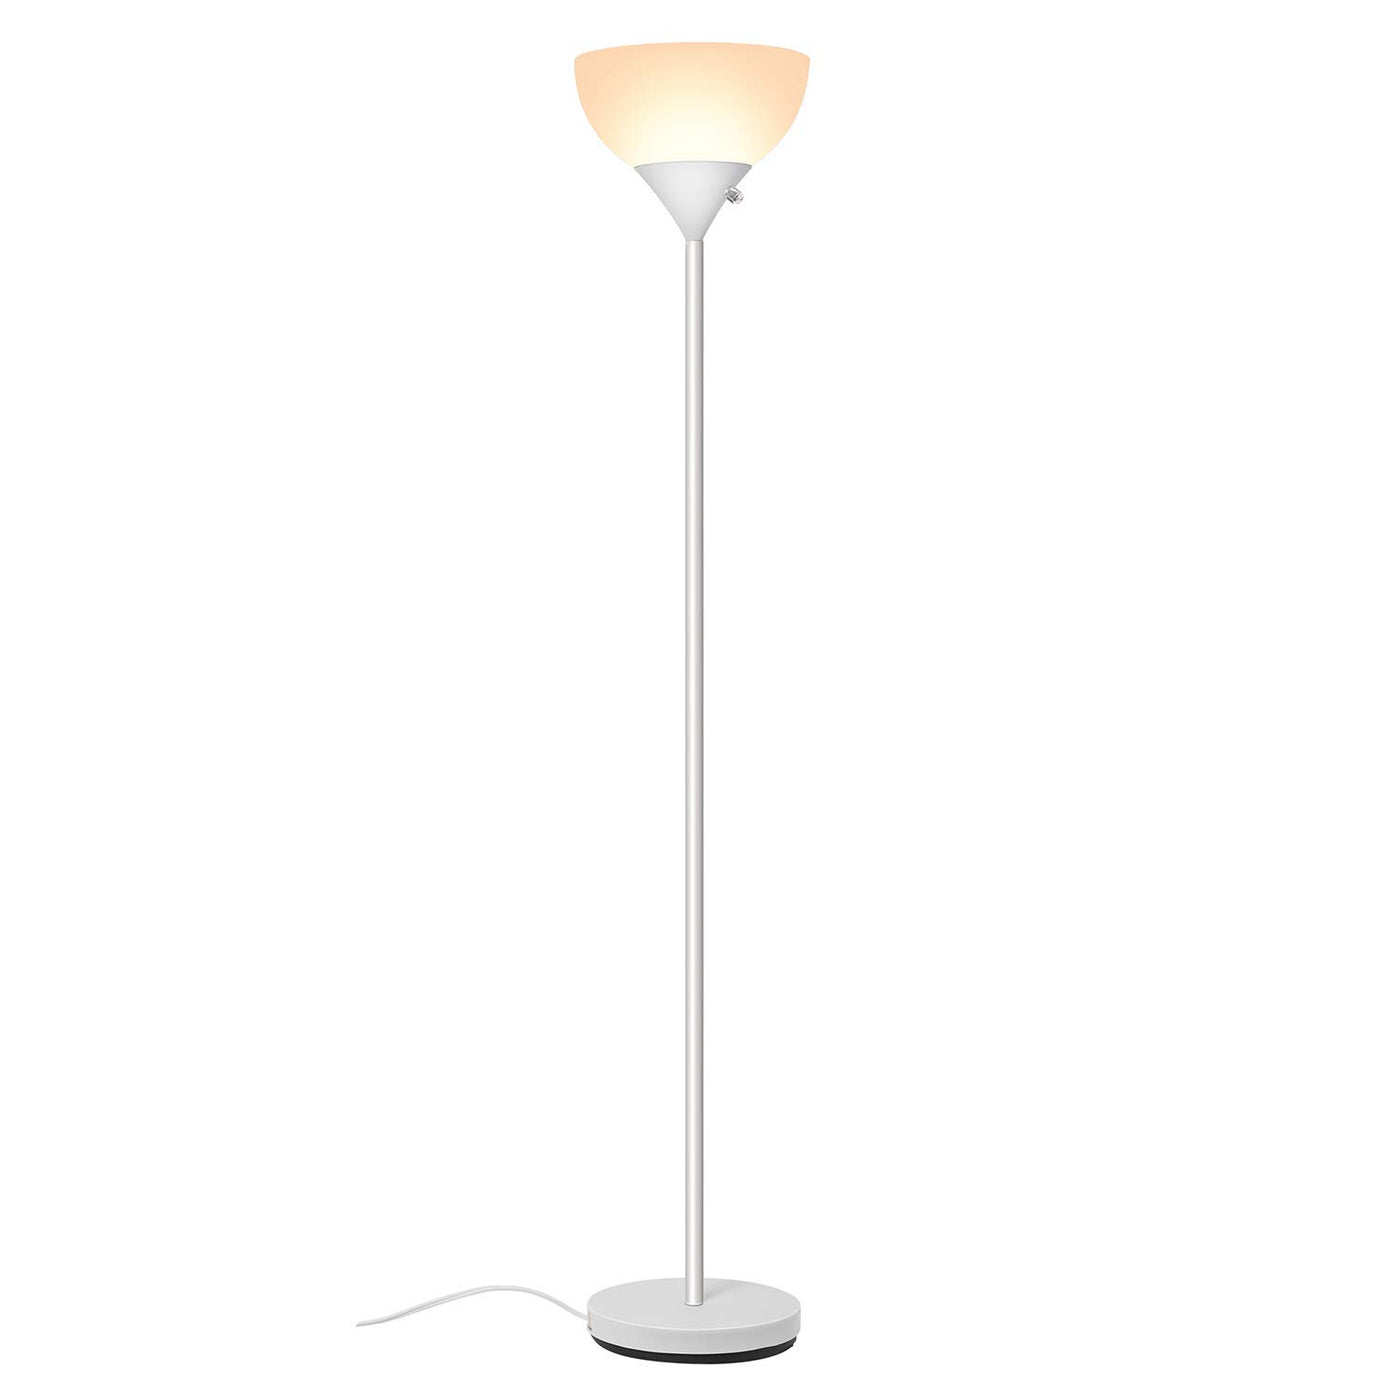 SUNLLIPE LED Torchiere Floor Lamp 19 Inches Energy Saving